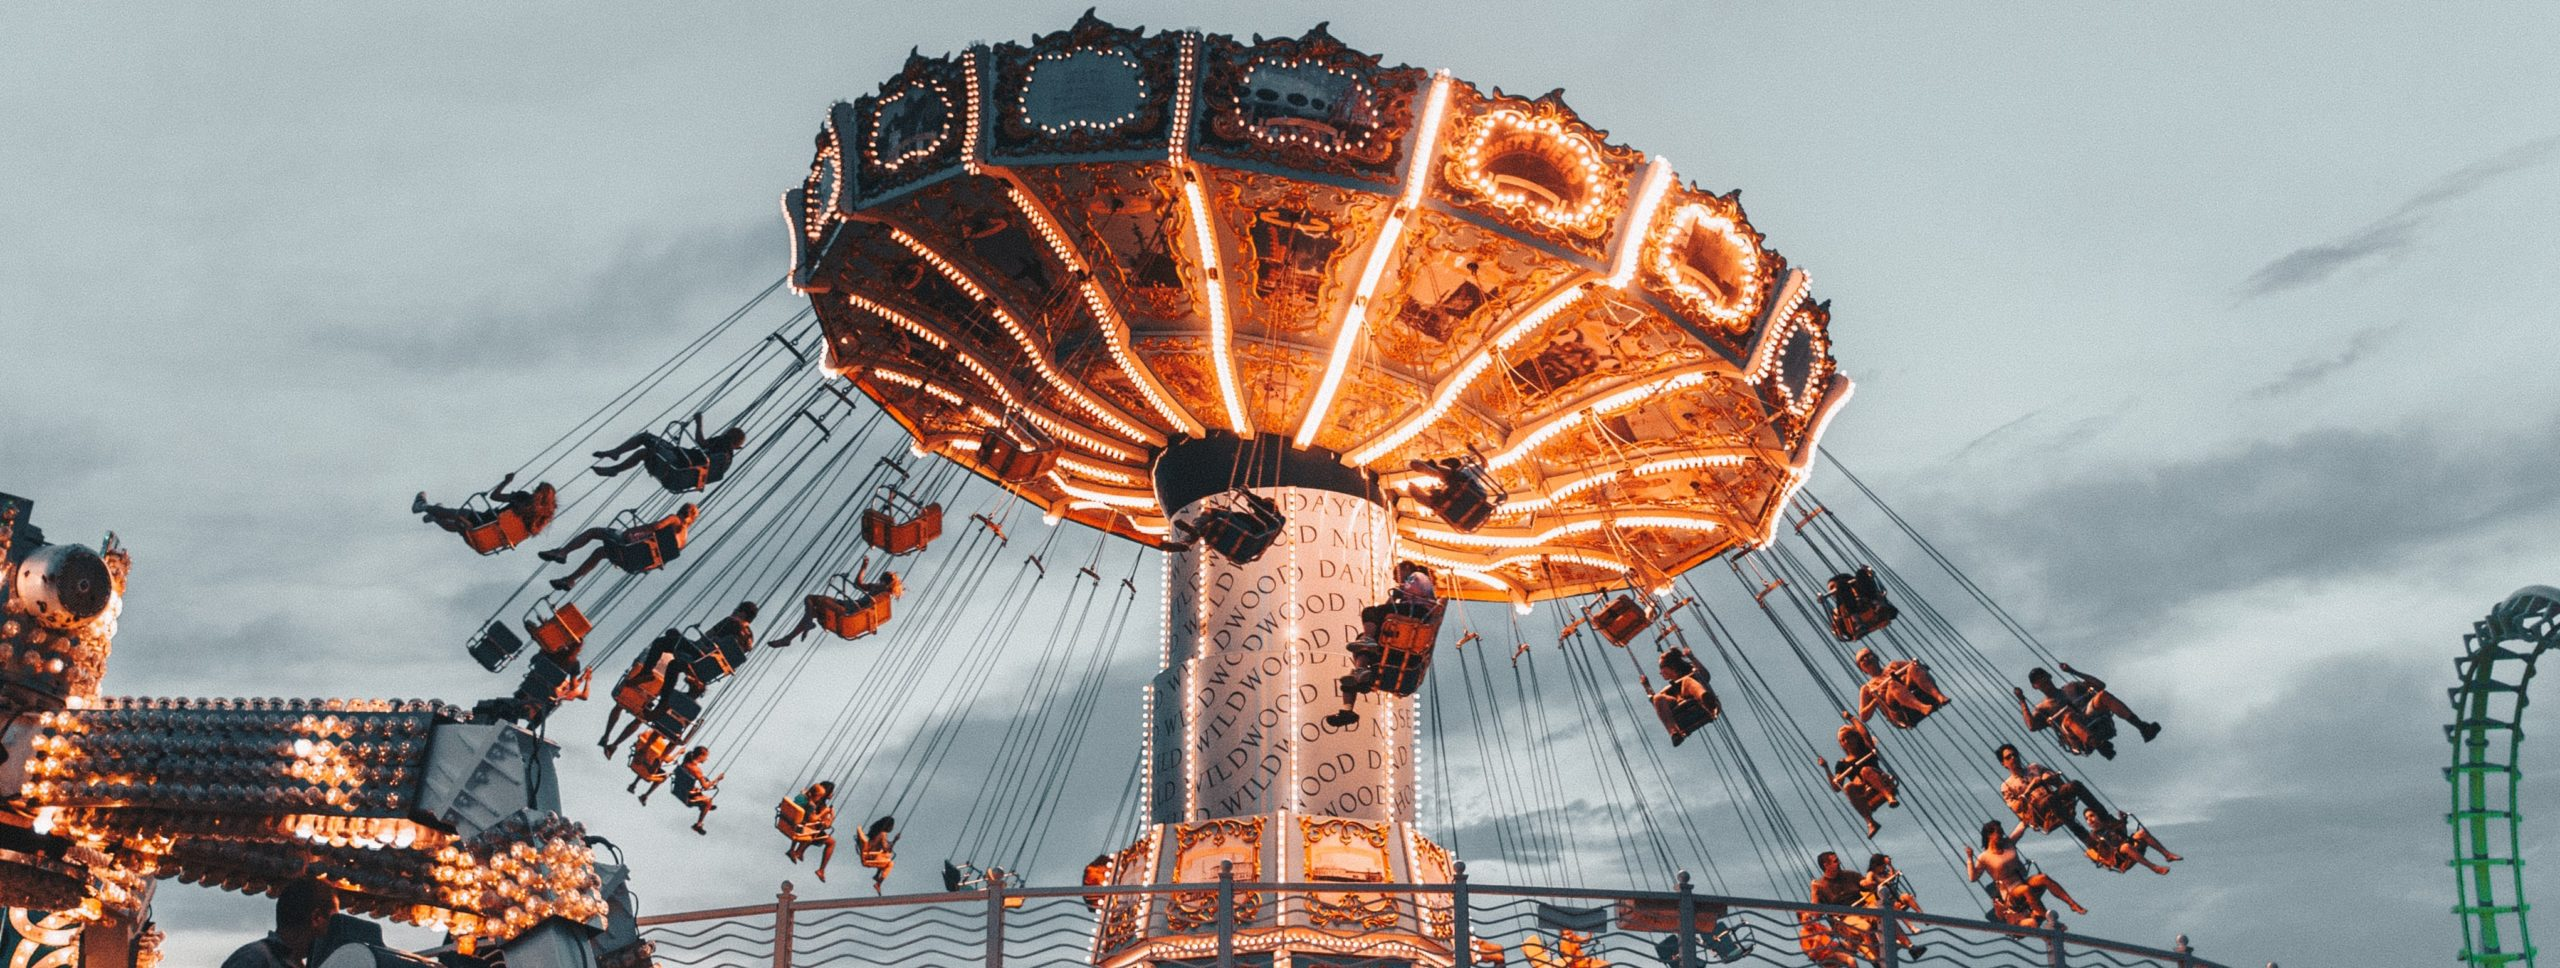 Hucksters and Carnies